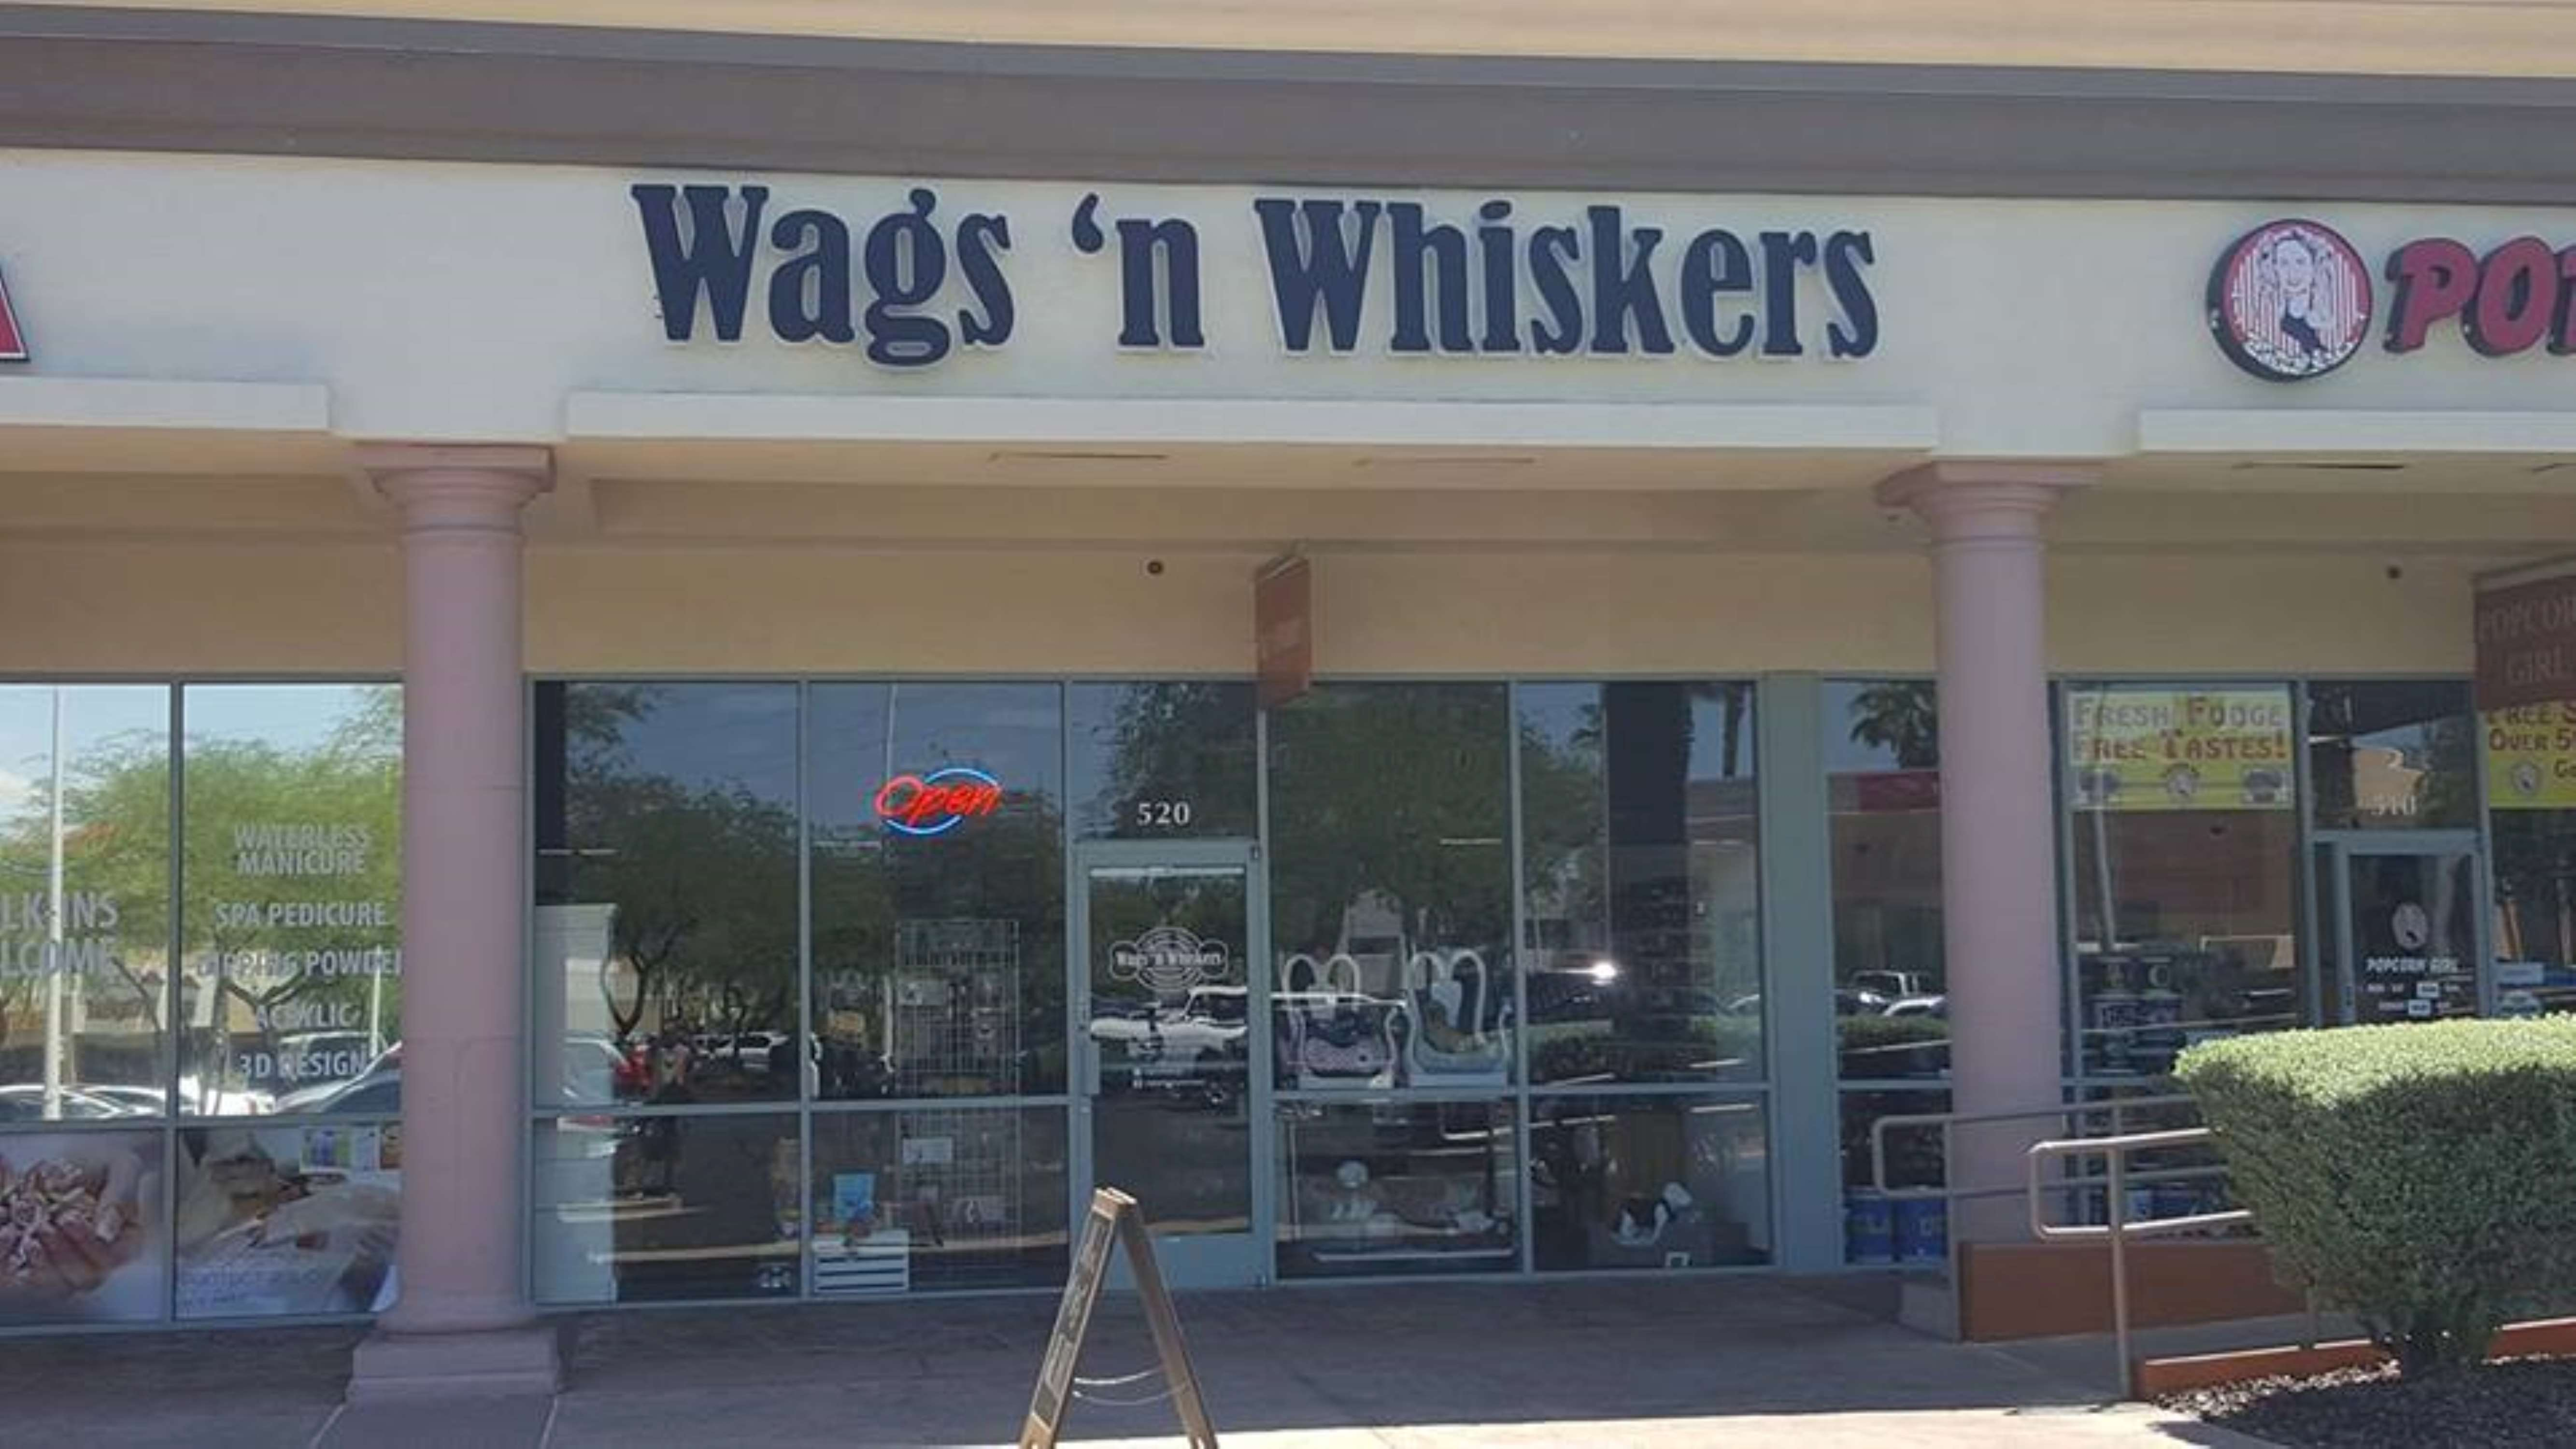 Wags 'n Whiskers General Store